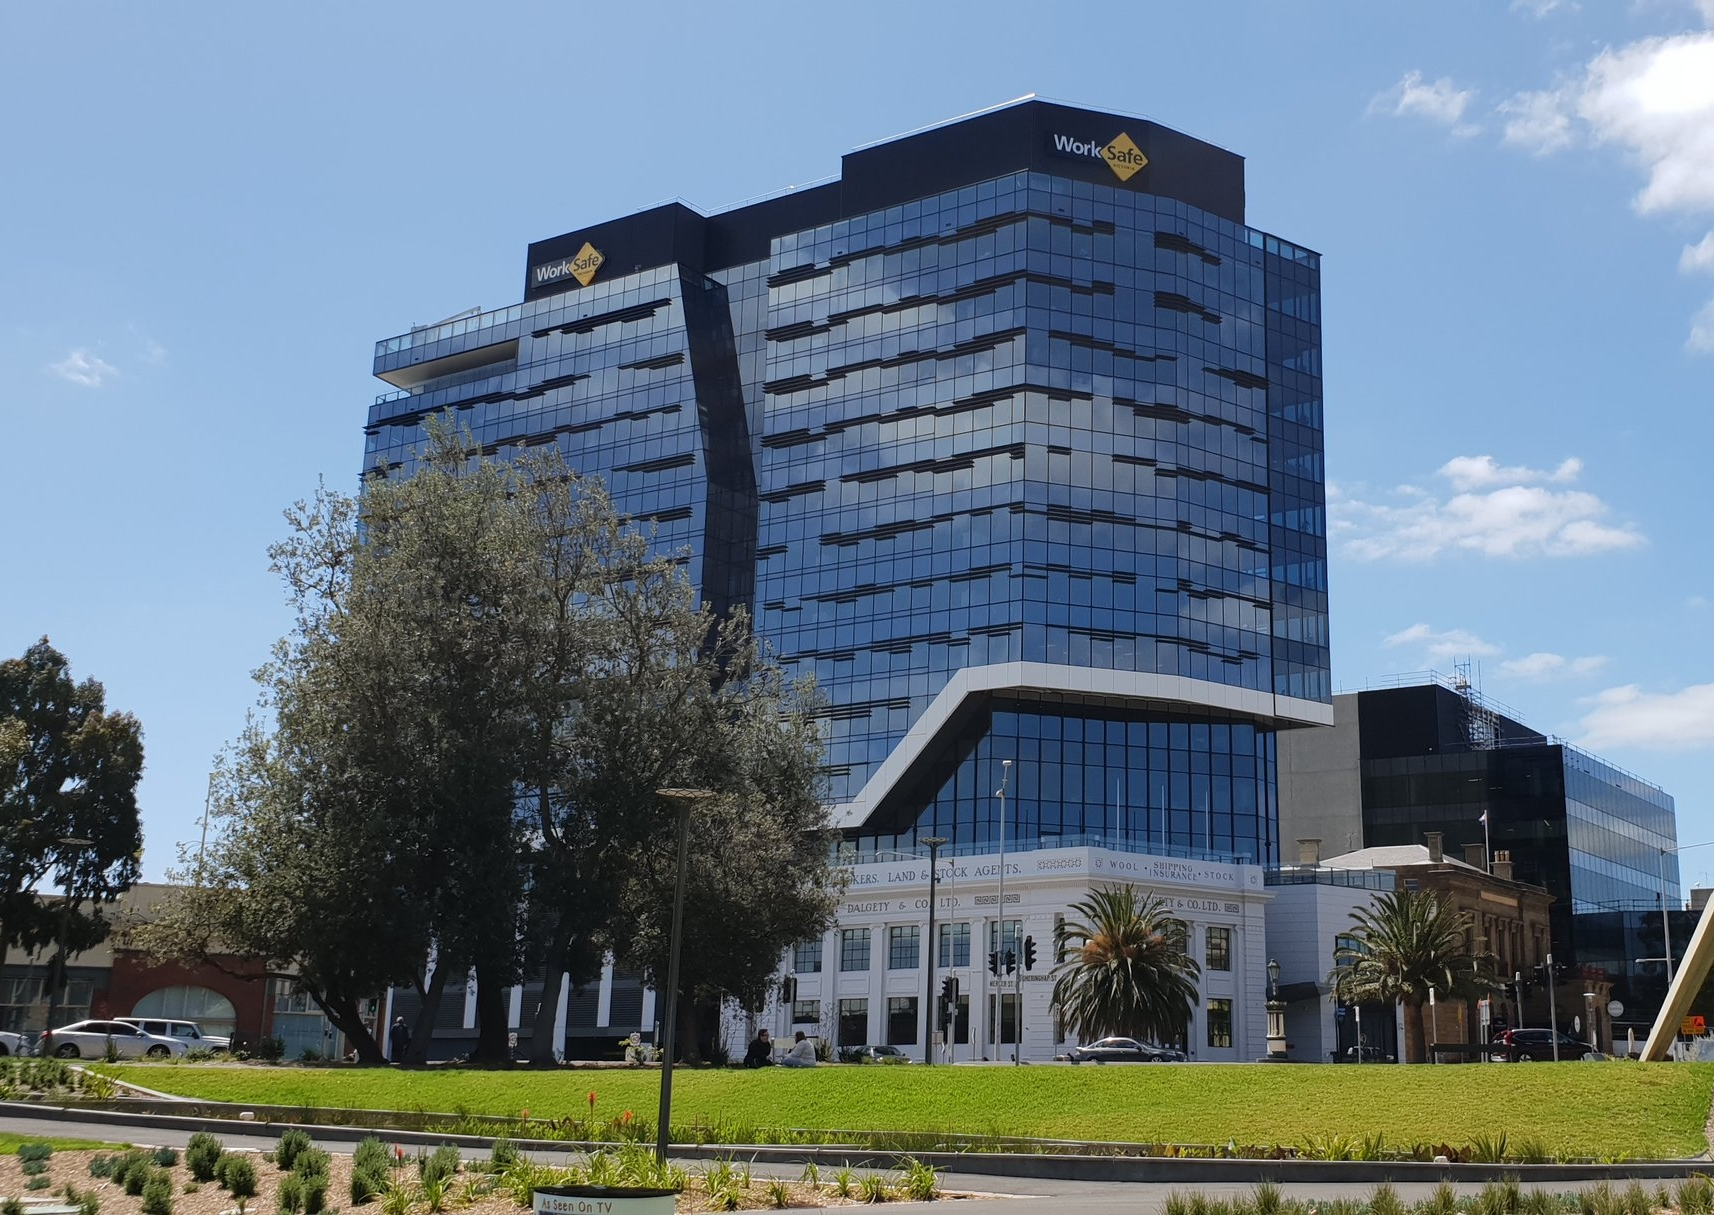 The brand new 12 story WorkSafe building is the tallest building in Geelong.